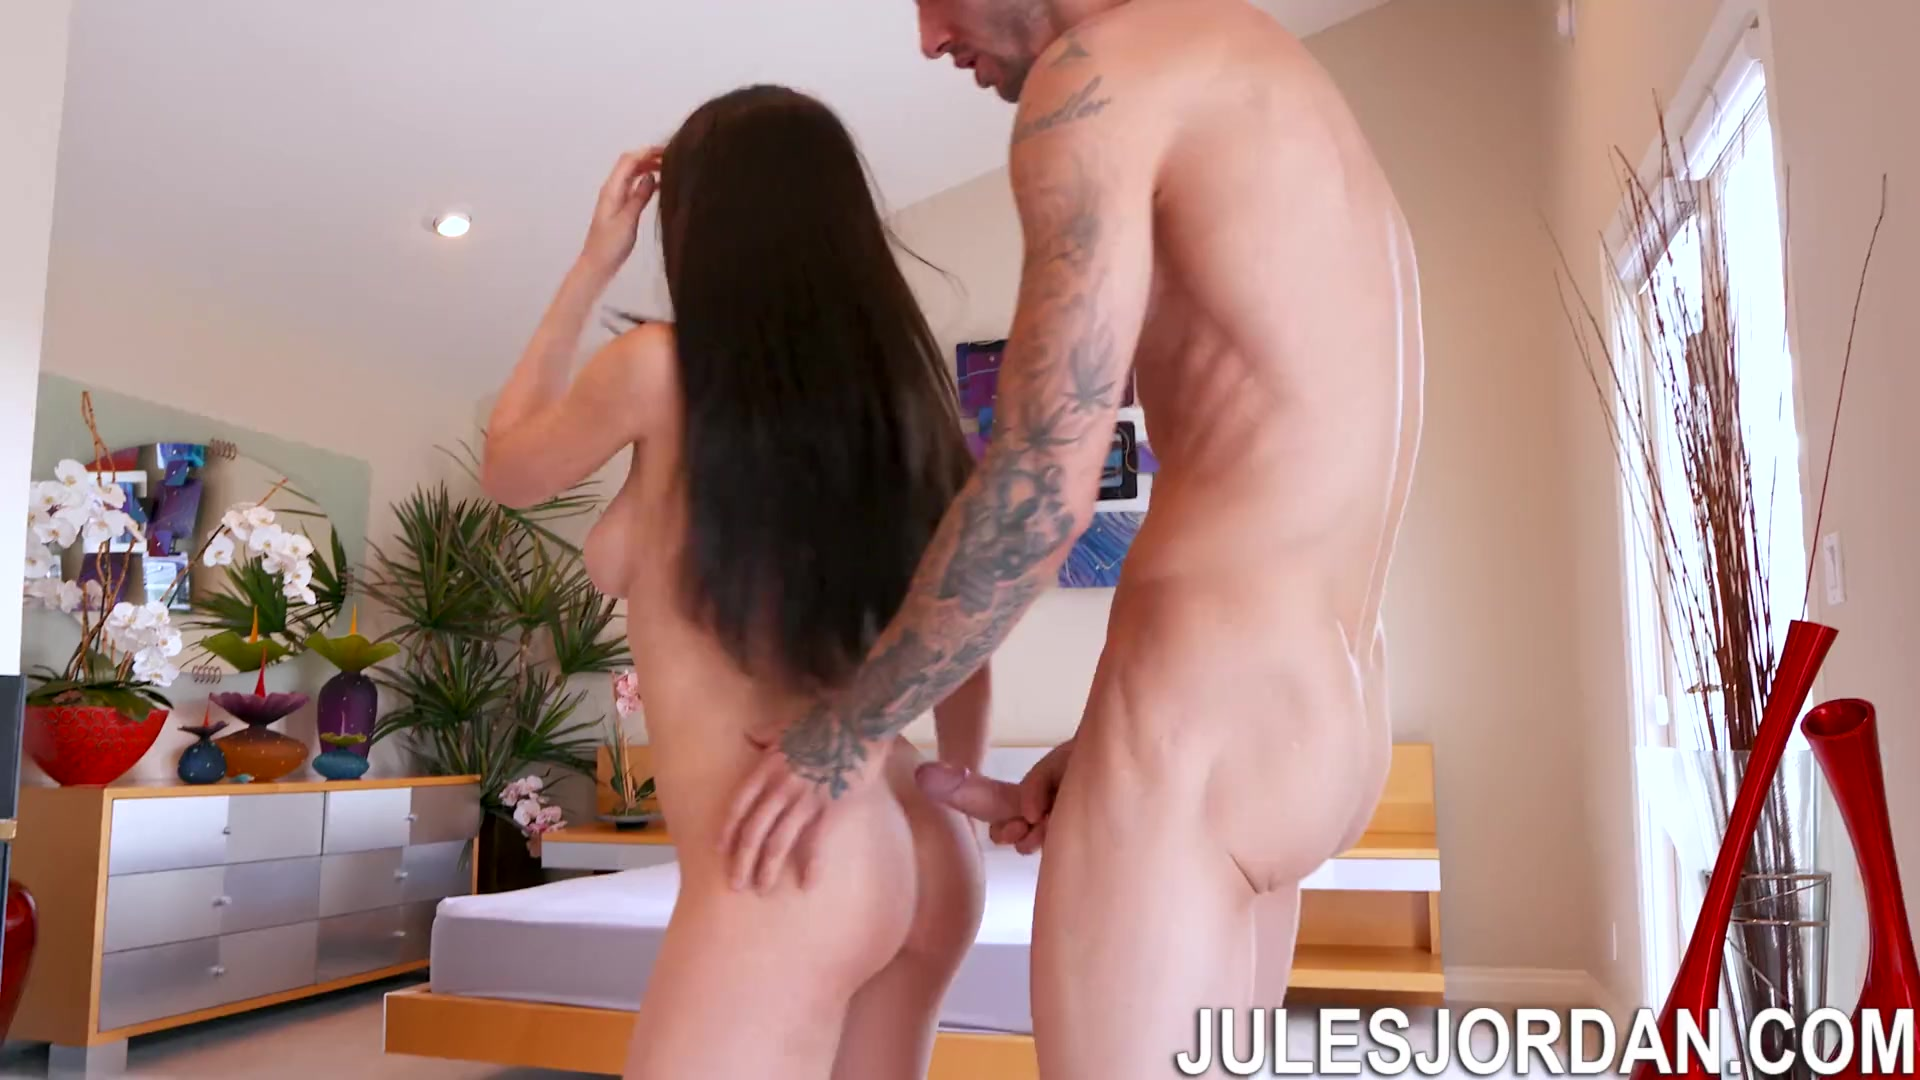 Jules Jordan - Lana Rhoades 19 Year Old Busty Teen Gets Covered In Cream